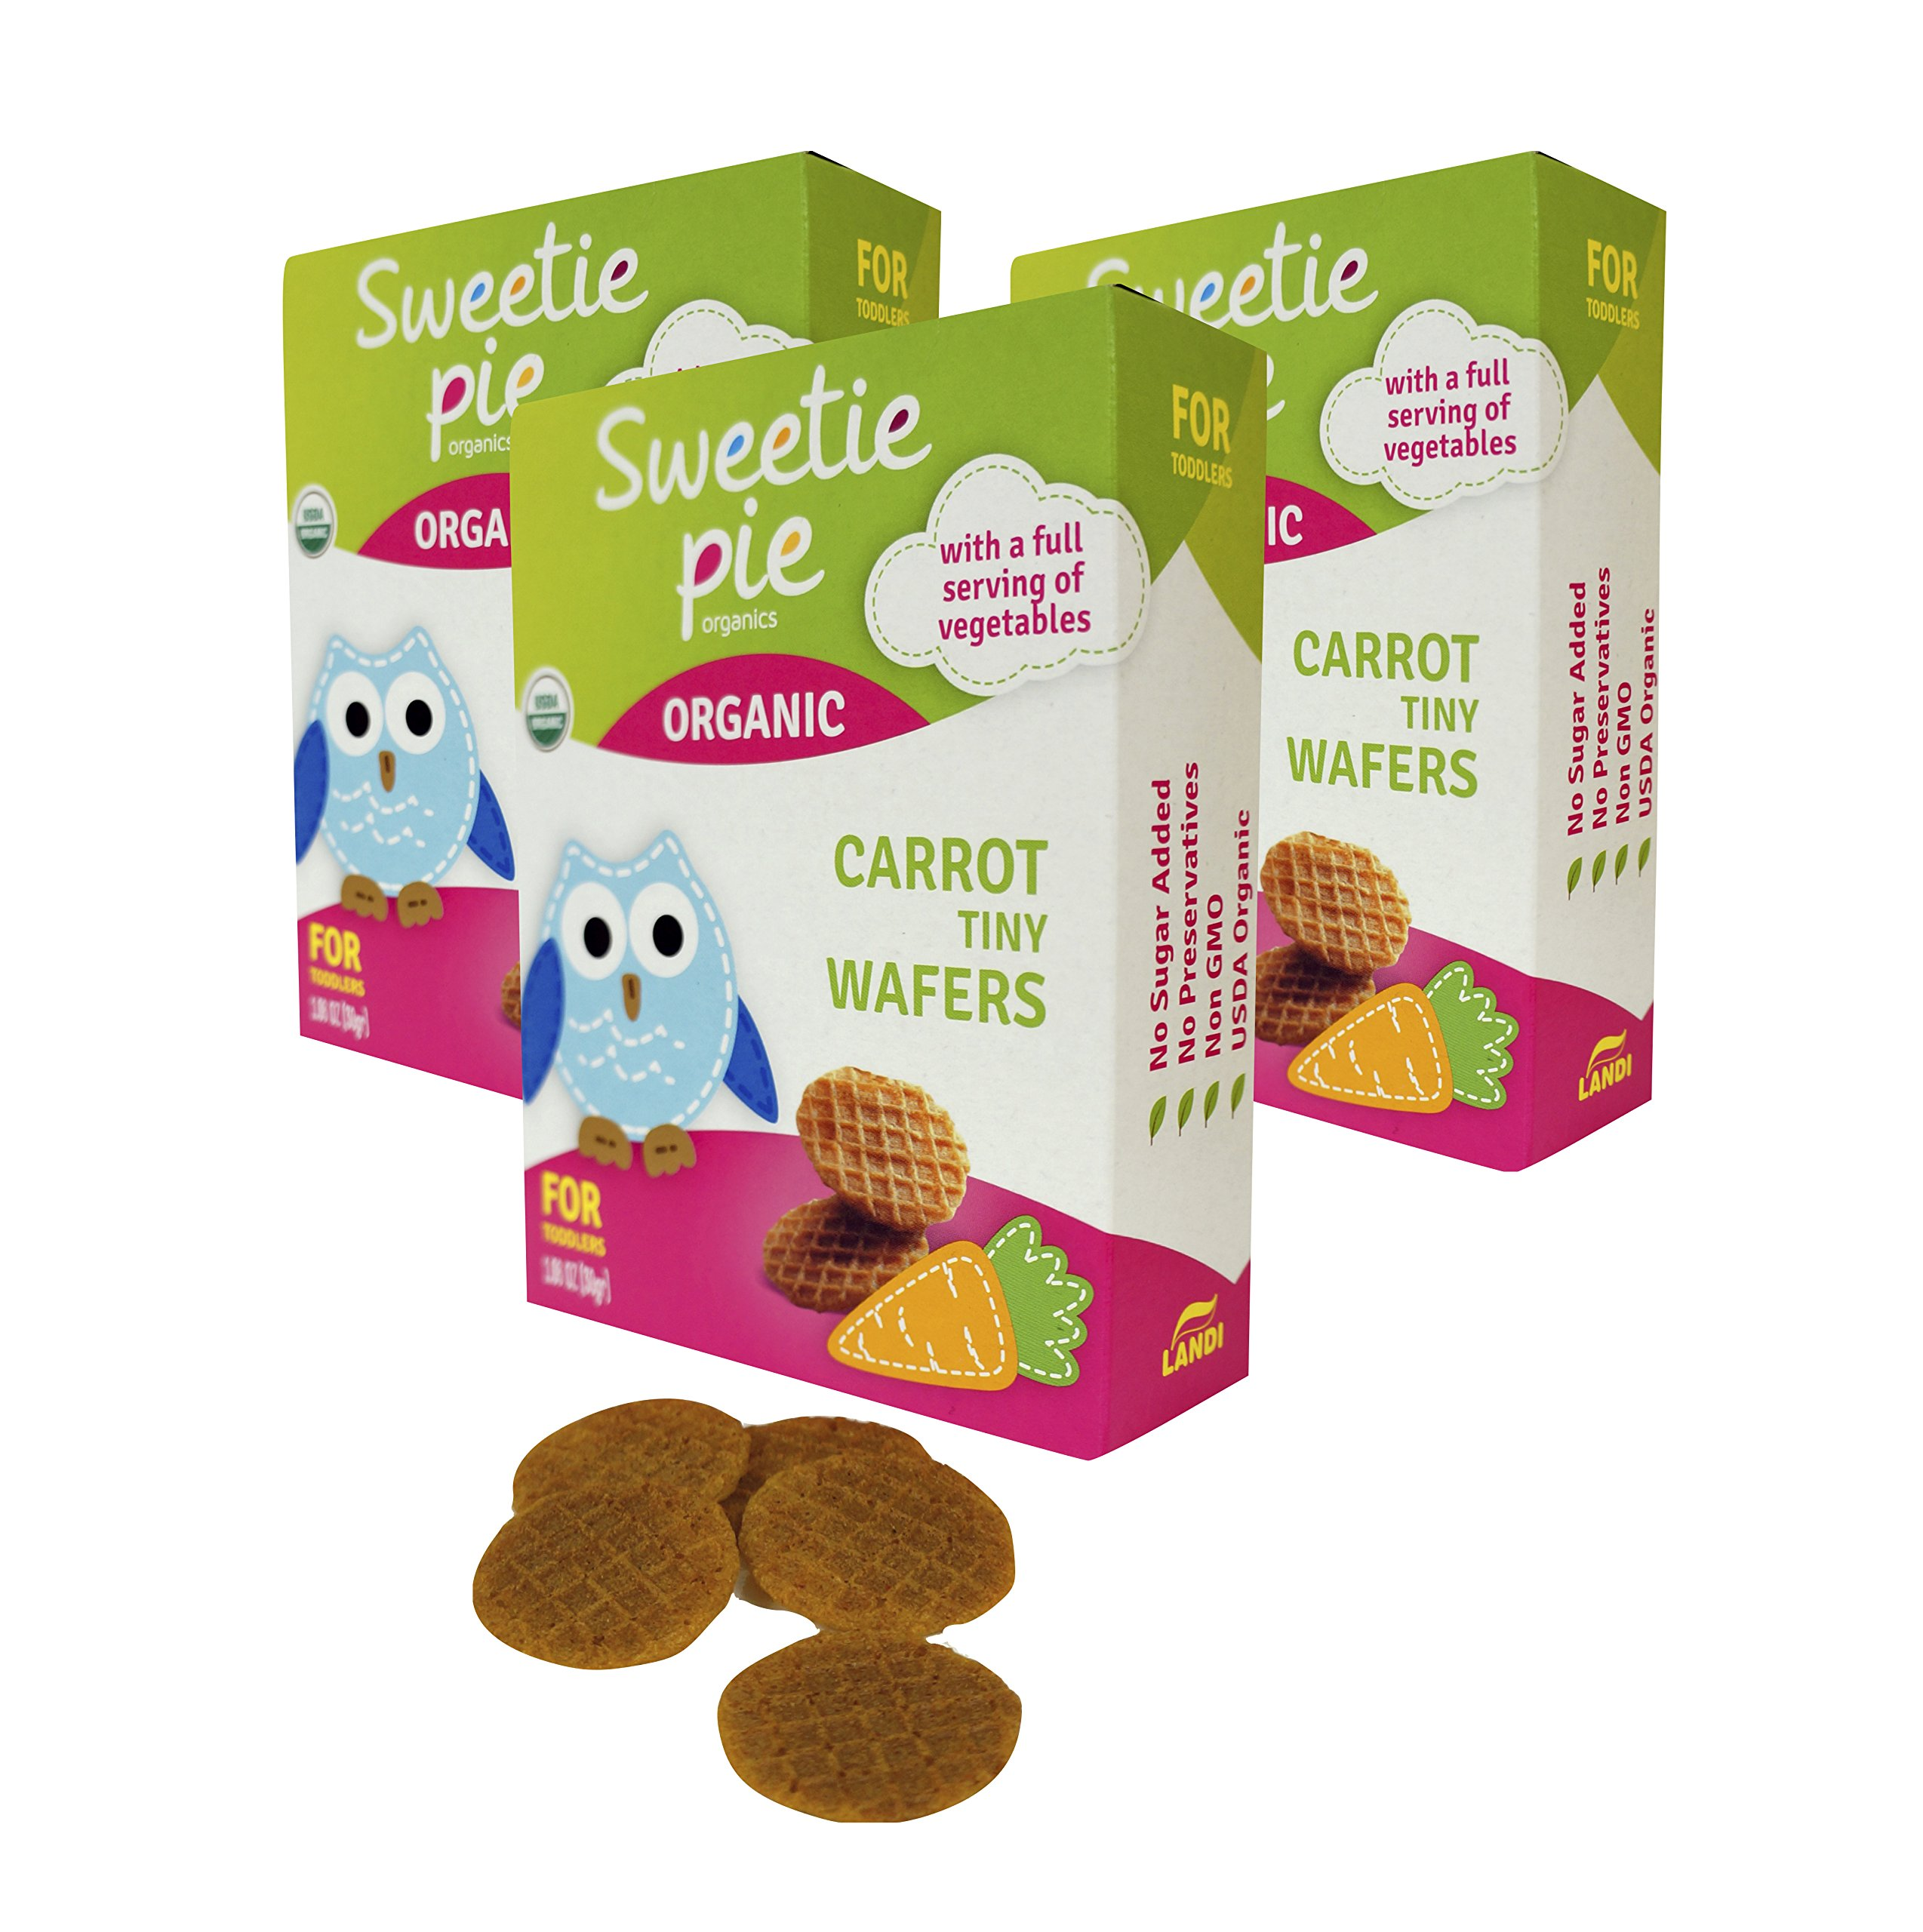 Sweetie Pie Organics 3 Piece Tiny Wafers Carrot Organic Baby Healthy Snack Teething Biscuit Rusks, 3 Ounce by Sweetie Pie Organics